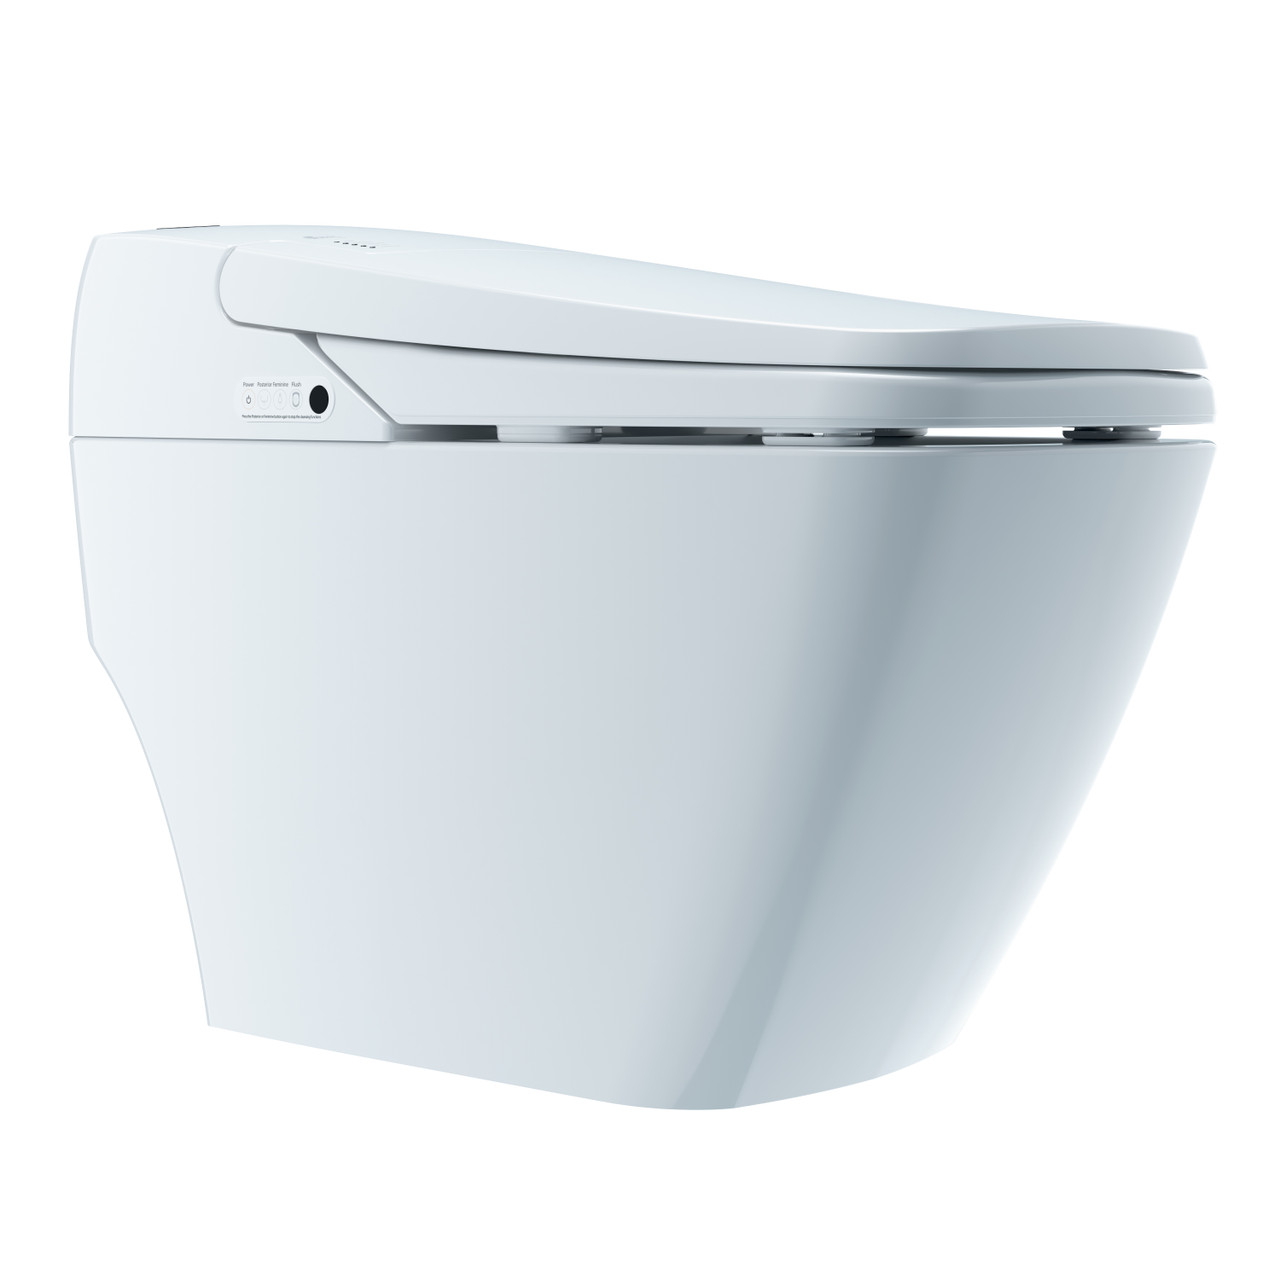 Remarkable Bio Bidet Prodigy P 700 Integrated Bidet Toilet System Gmtry Best Dining Table And Chair Ideas Images Gmtryco